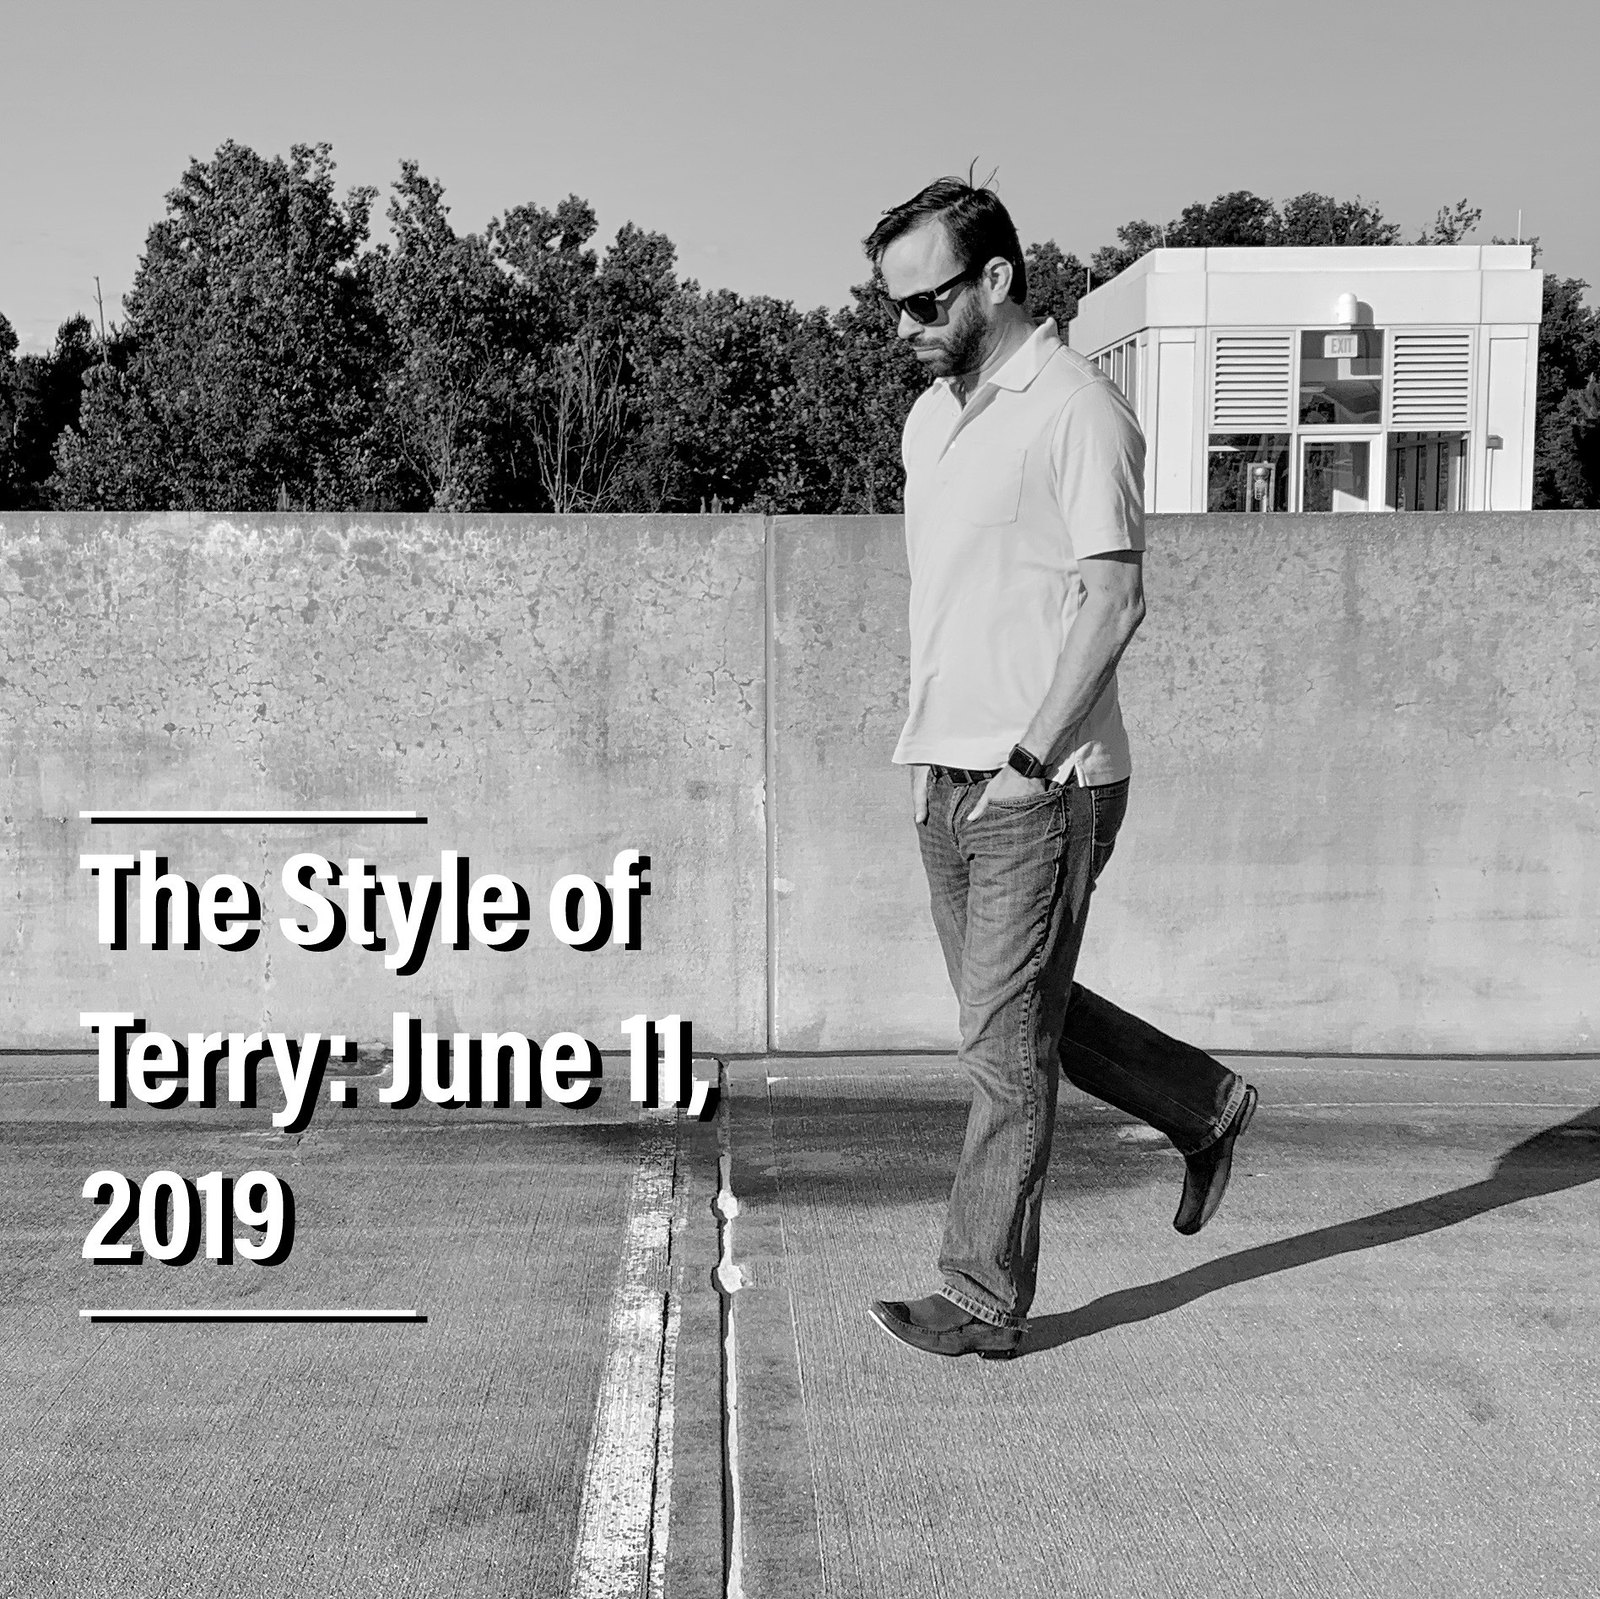 The Style of Terry: 6.11.19